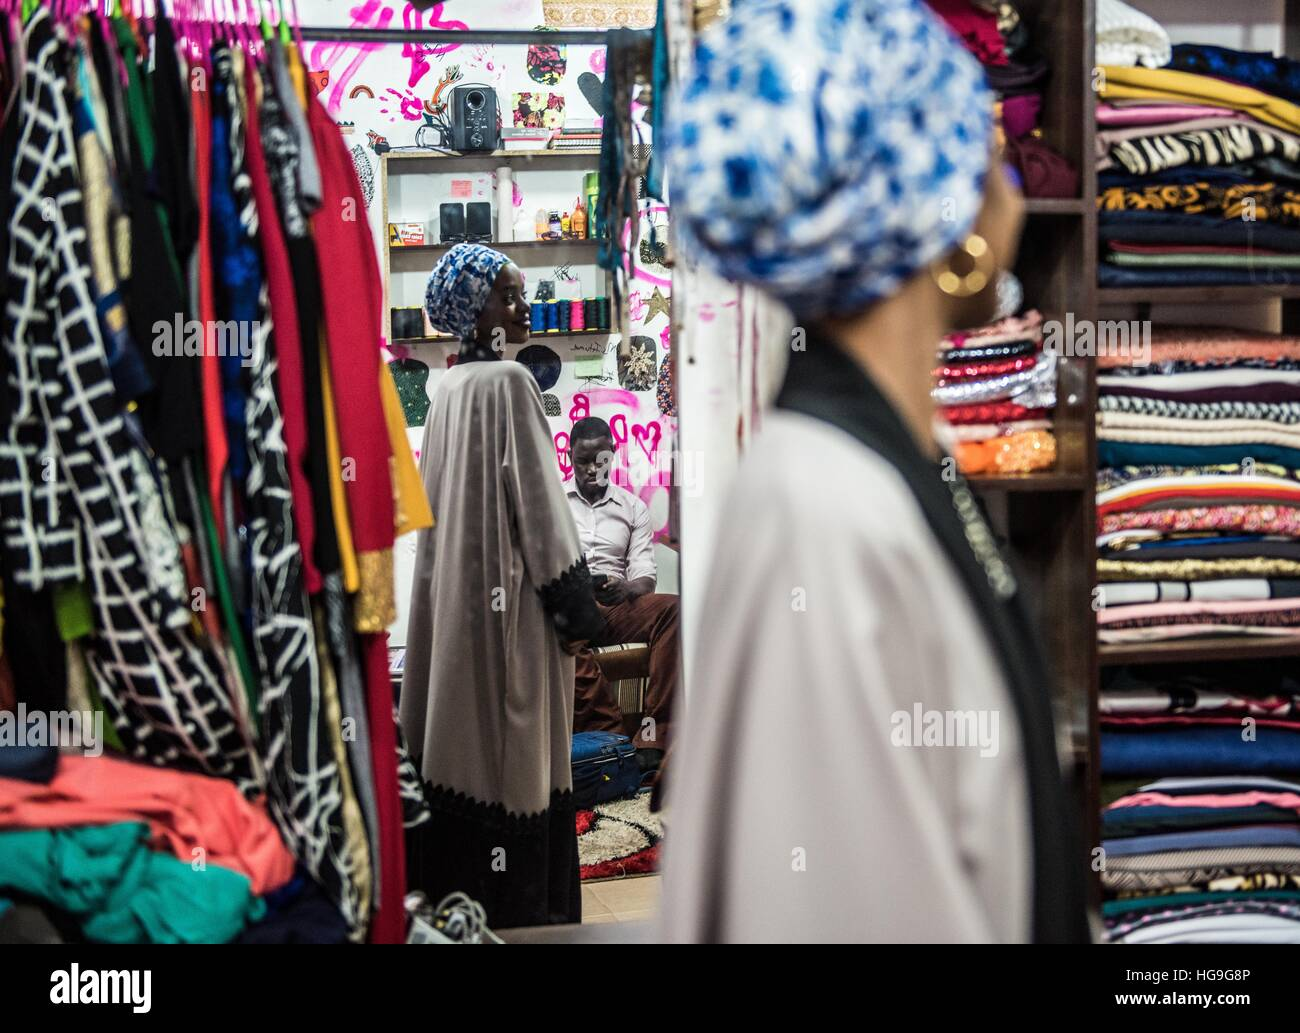 Islamic Fashion High Resolution Stock Photography And Images Alamy